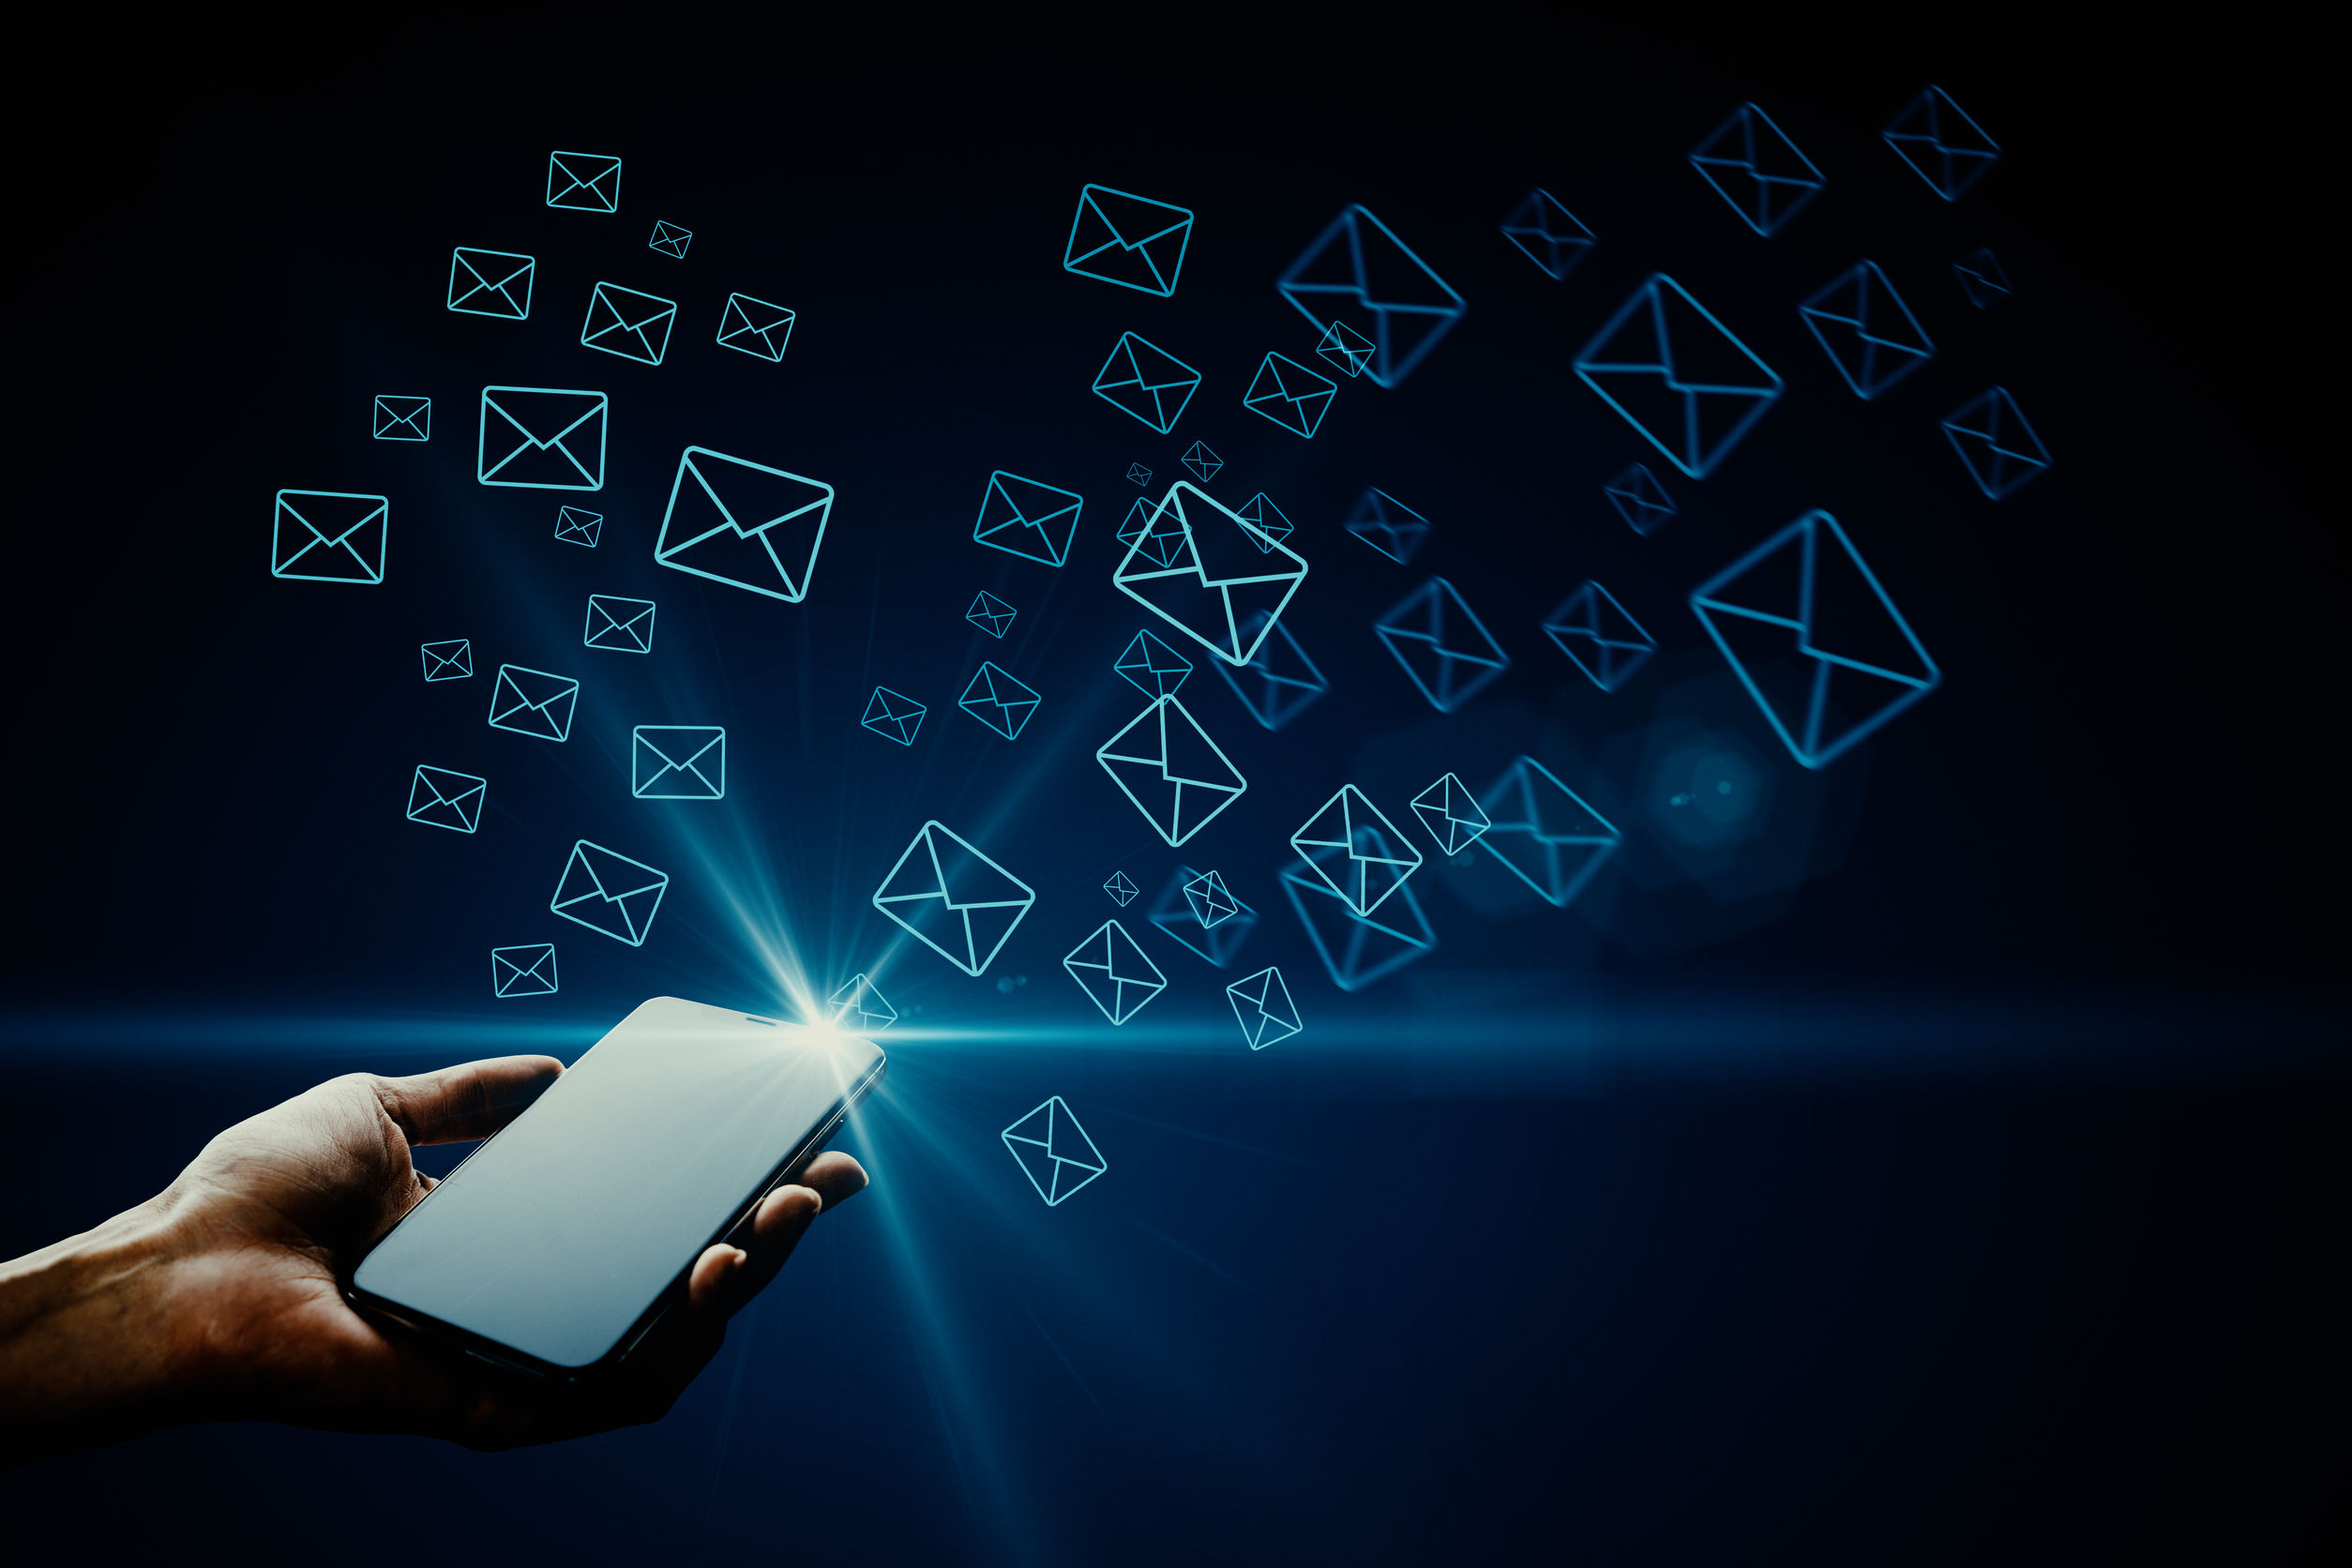 Hand holding smartphone with glowing letter icons. E-mail marketing concept